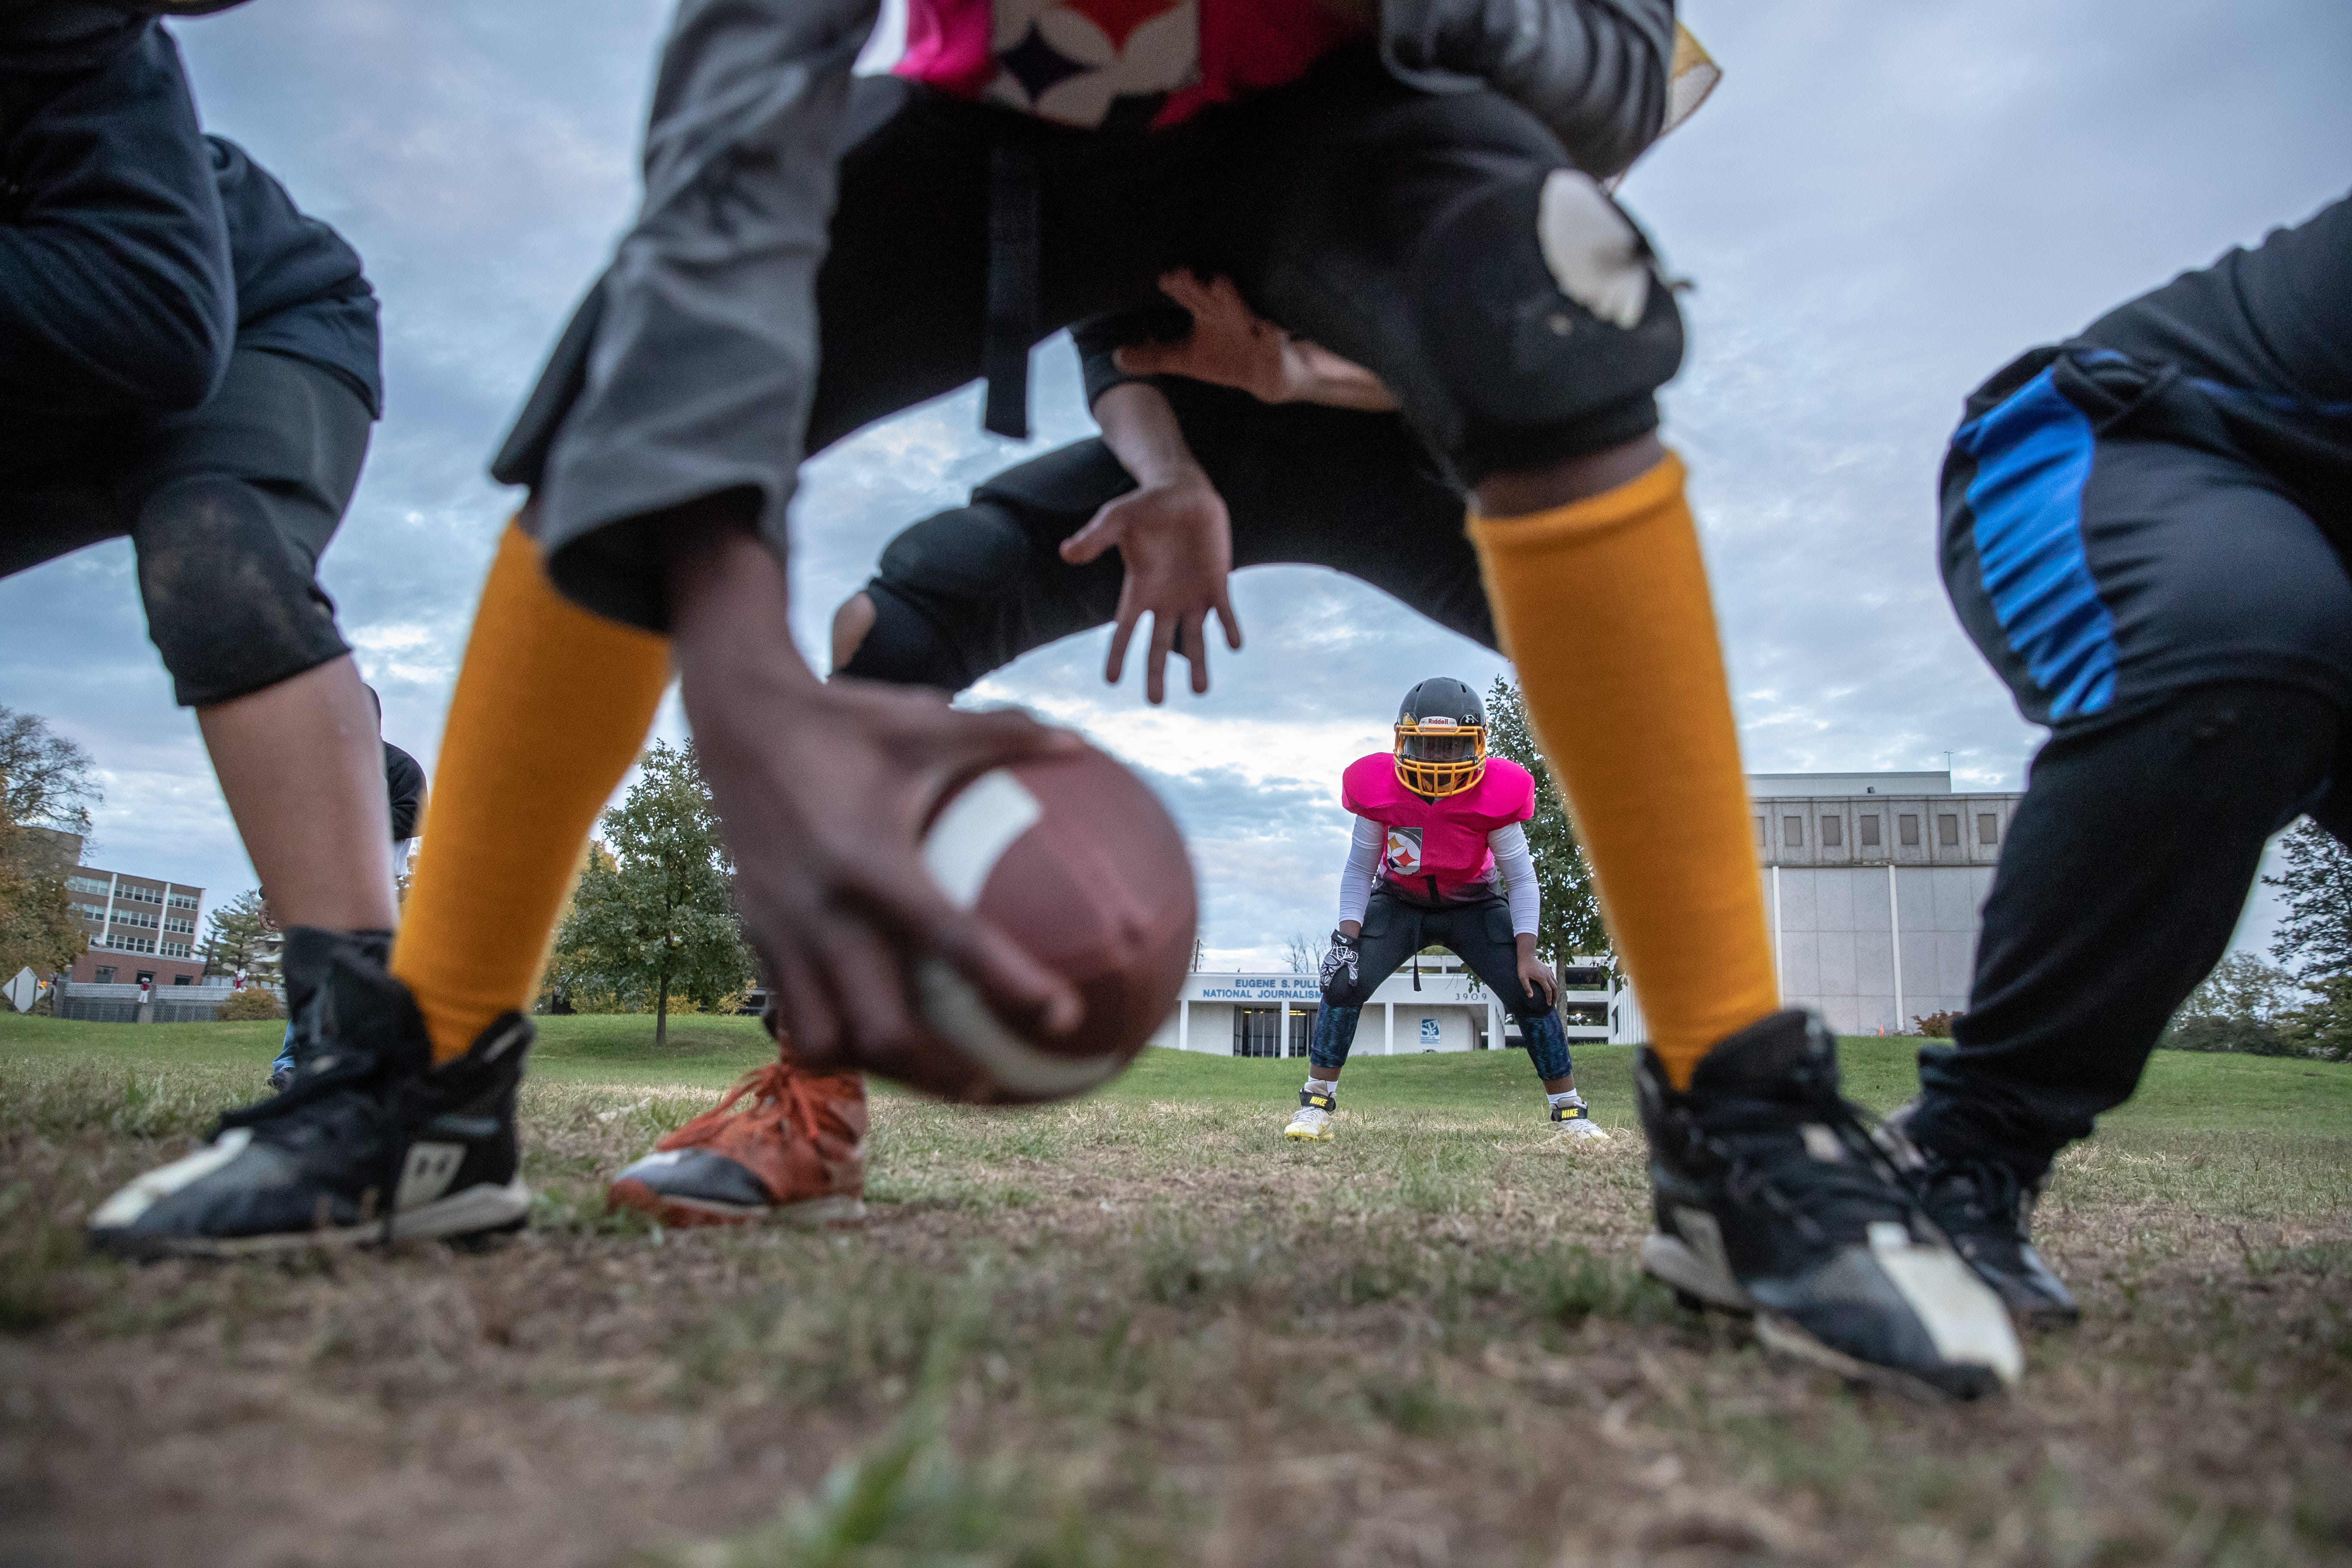 """Indy Steelers 10u running back Chloe Williams, known to her teammates as the First Lady and is the first female football player in the 15-year history of the Steelers, prepares to take the handoff during practice at Tarkington Park. The park, located just off Illinois and 38th Street, is typically busy with hundreds of people on summer nights. And though the kids are playing football to stay out of trouble, according to Lacie Nix, mother of two Steelers players, """"sometimes the trouble finds them."""" During a practice at Tarkington Park gunshots rang out. """"When you hear gunshots your natural reaction is to run, so trying to explain to an 8 or 9-year-old kid, it's like we don't want you to run you have to get down. It's not something that you want to explain to a kid,"""" said coach Donnell Hamilton. Nix remembers asking kids if they were OK after the incident. """"Several of them looked at me and said, 'Oh, that's normal,'"""" said Nix, """"That's not normal. That shouldn't be normal for them."""""""